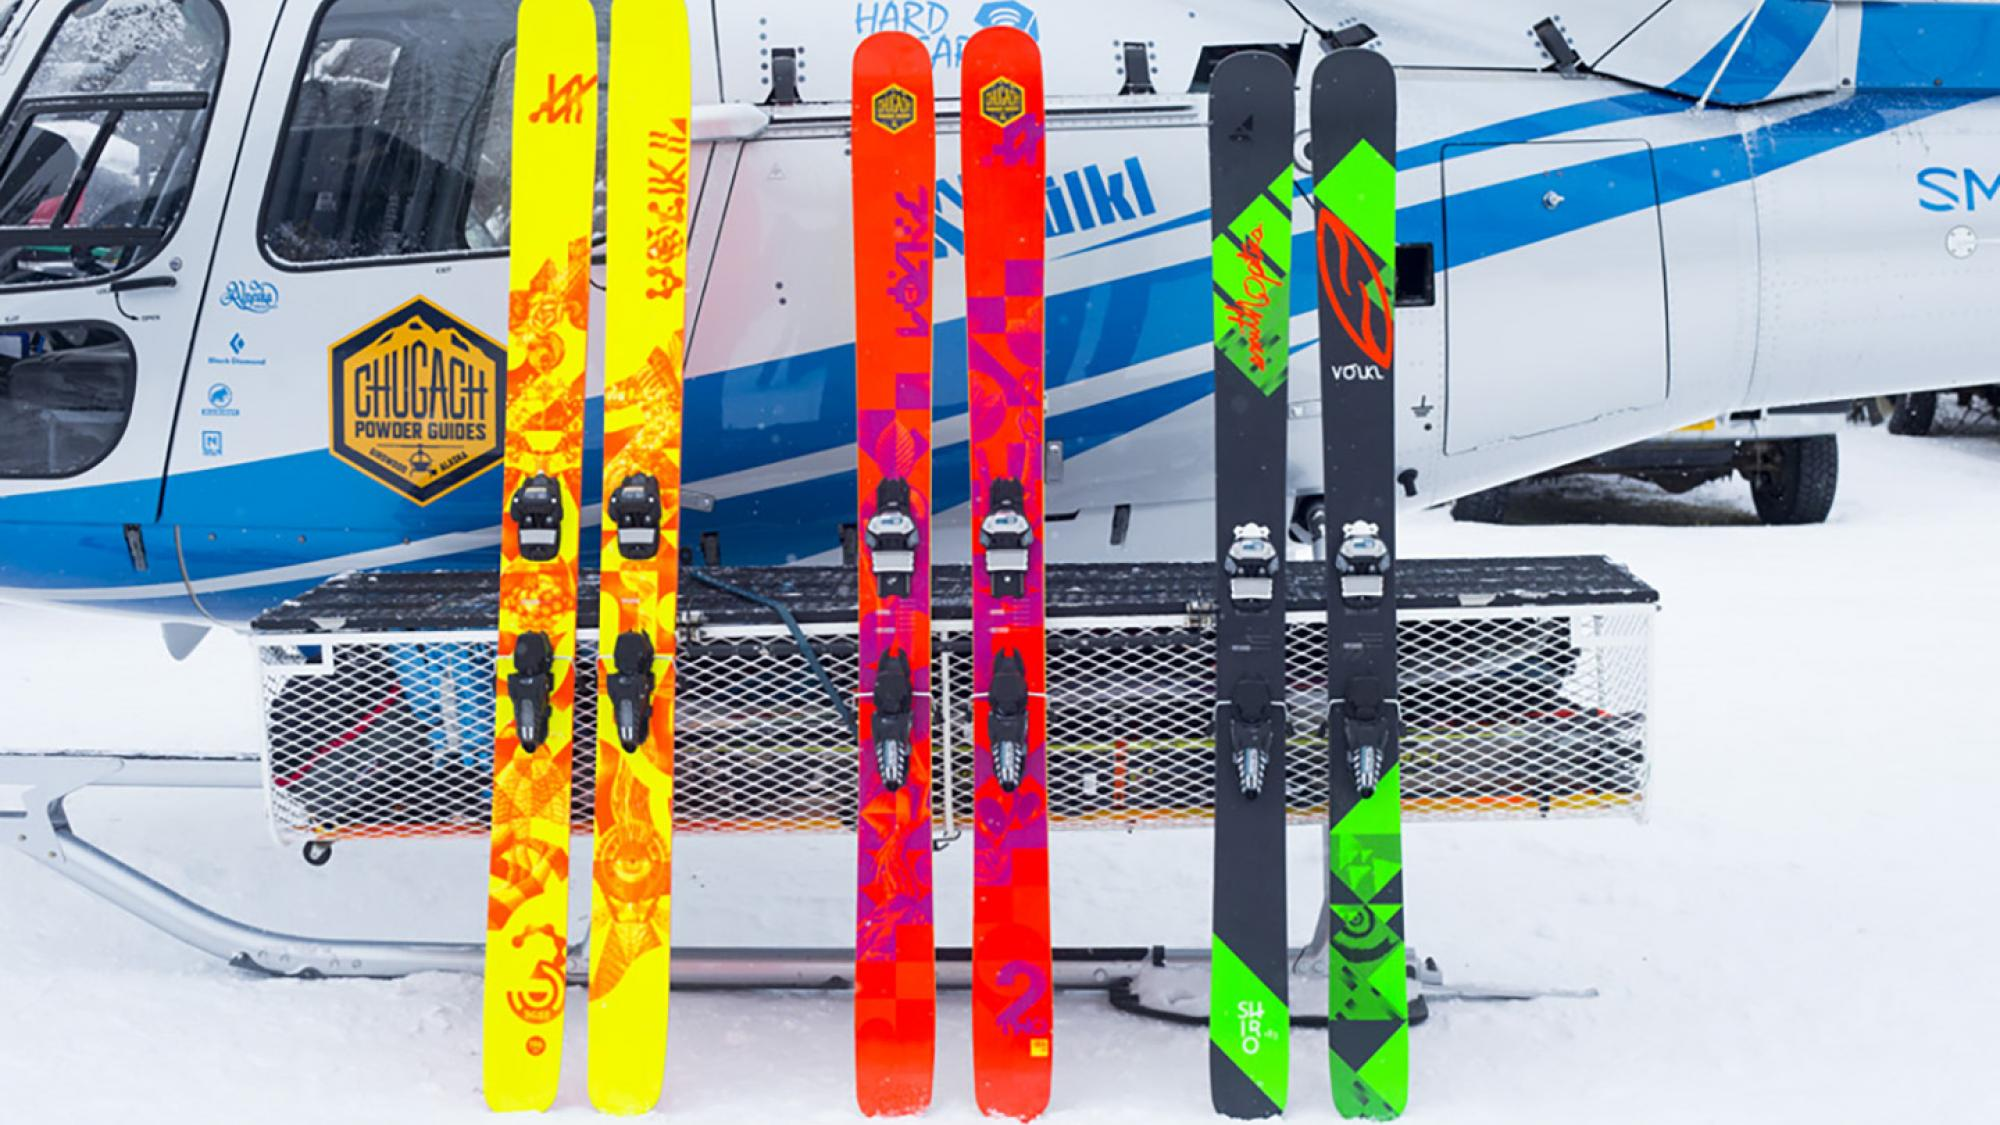 CPG's demo line of Volkl Skis